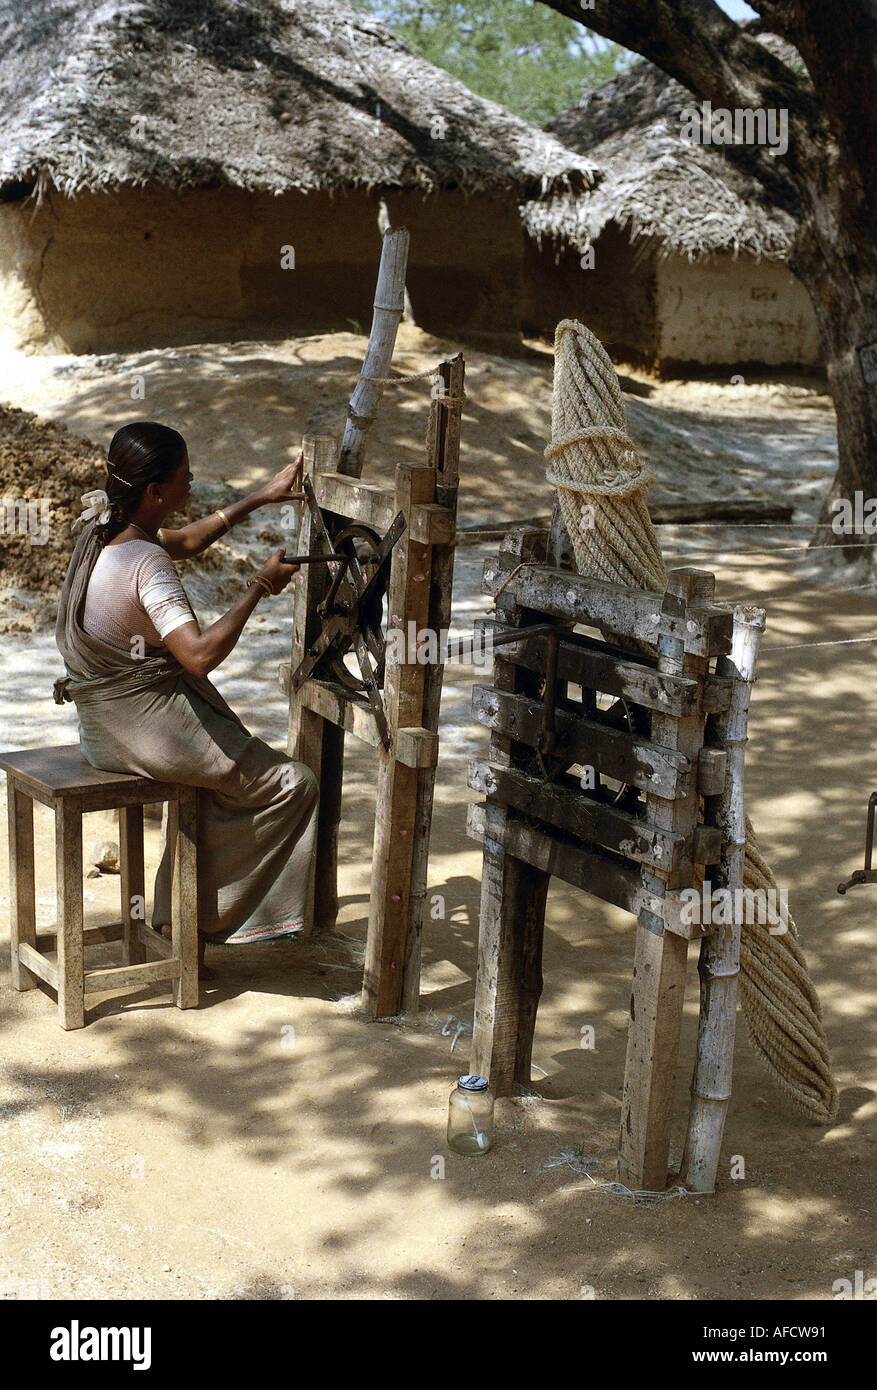 geography / travel, India, skilled crafts, ropemaker at work, southern India, ropemaker, rope, production, , Additional-Rights-Clearances-NA - Stock Image